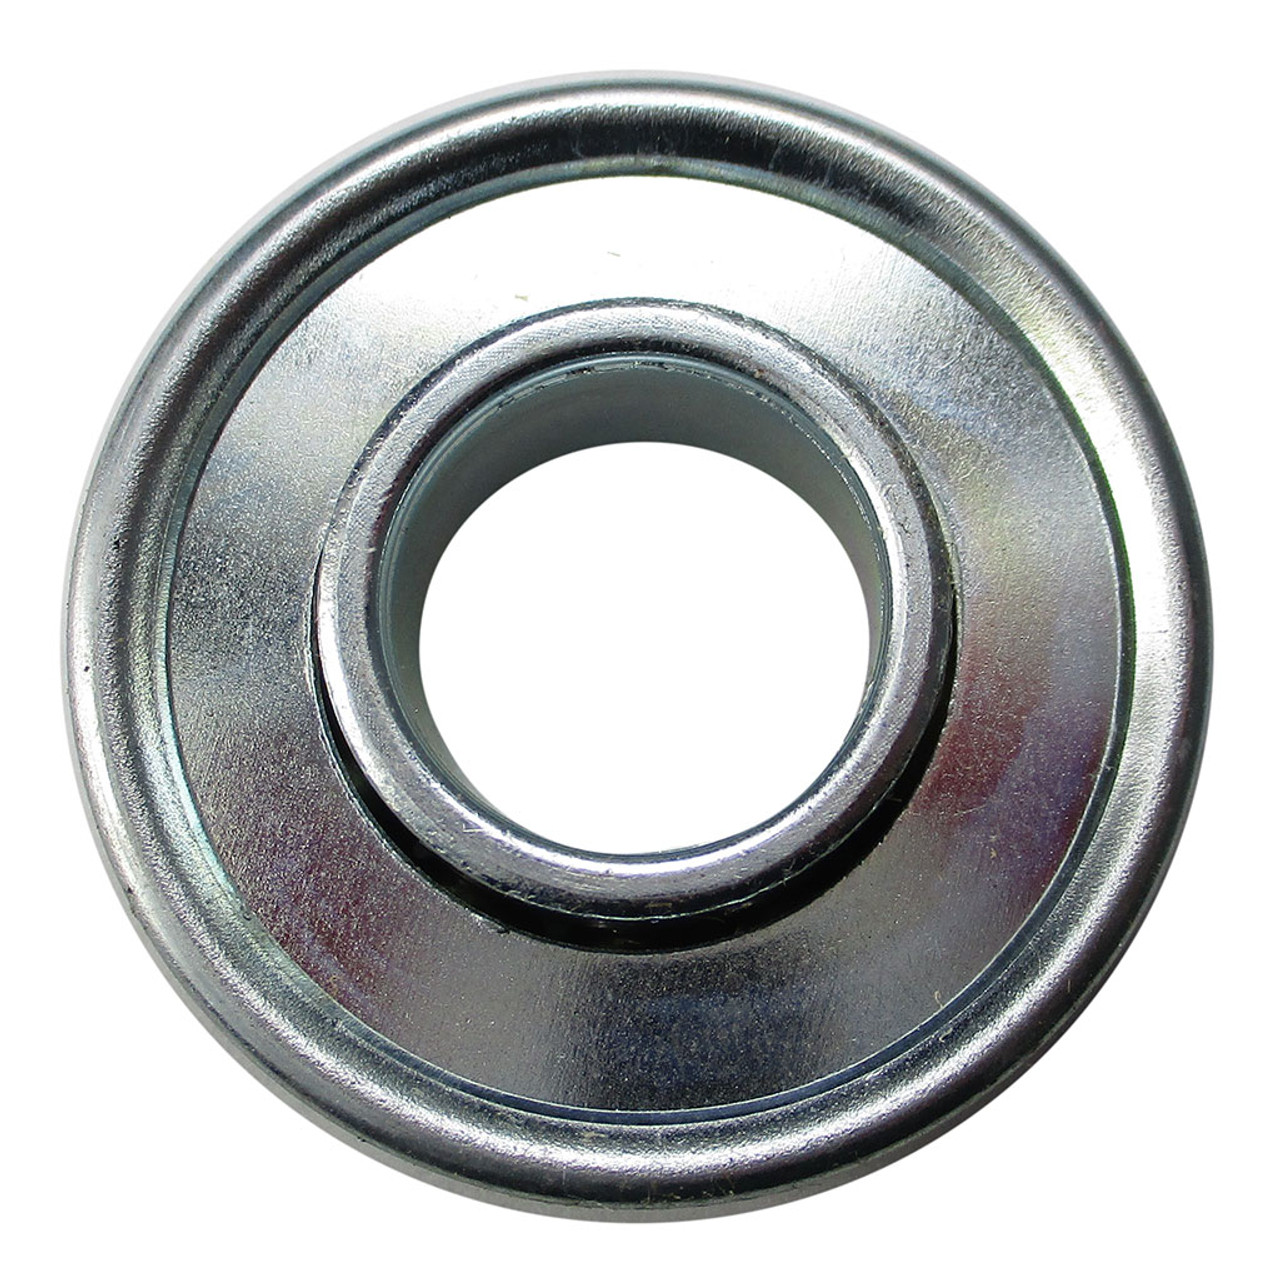 """5/8"""" ID x 1-3/8"""" OD x 5/16"""" Thick Standard Ball Bearing with Flange"""